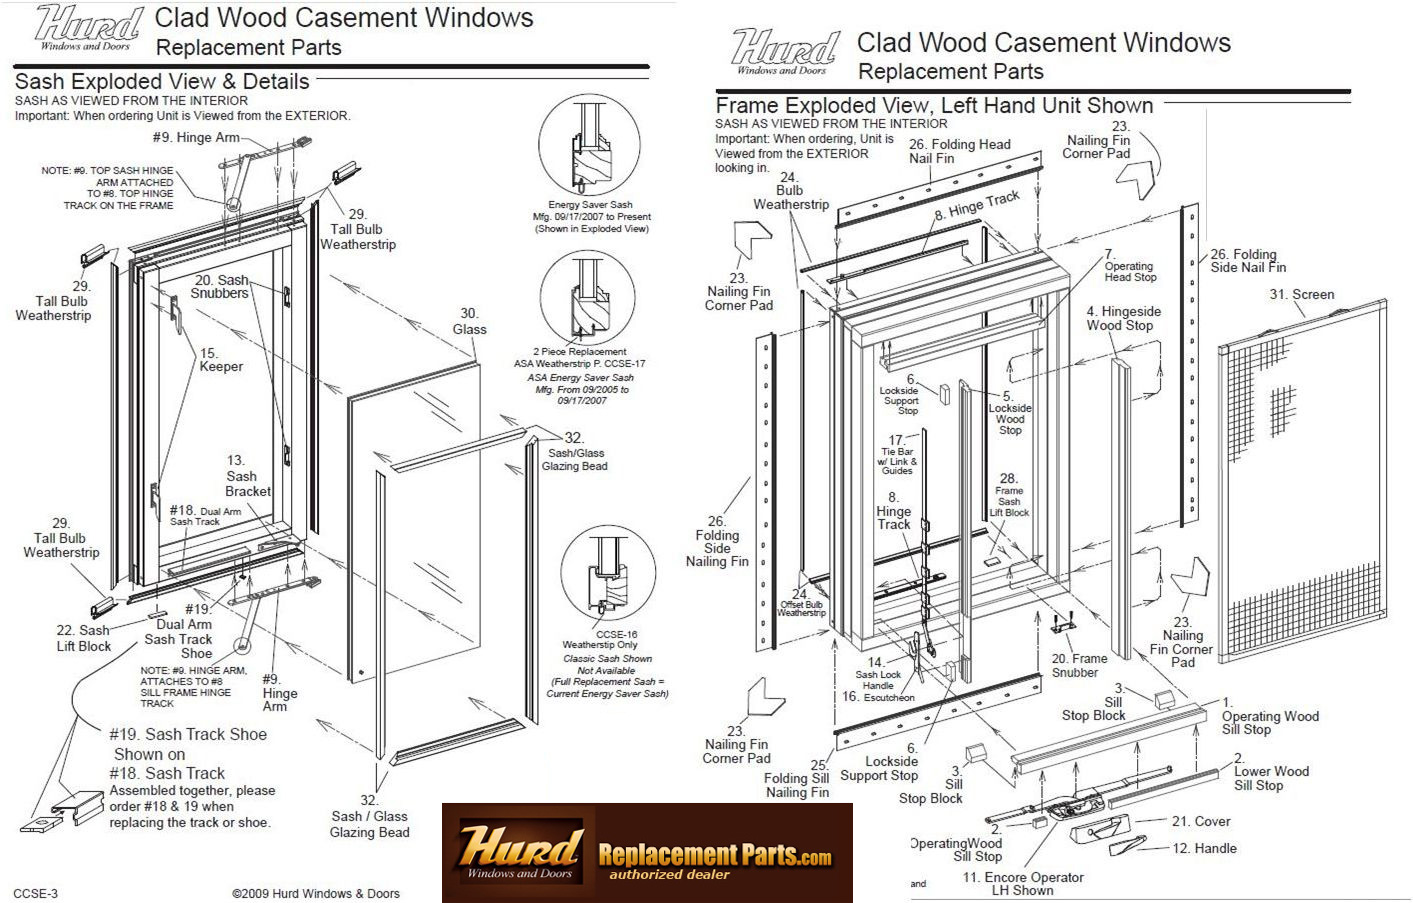 Aluminum Window Parts Diagram Not Lossing Wiring Replacing Hurd Casement Assembly Rh Hurdreplacementparts Com Storm Replacement